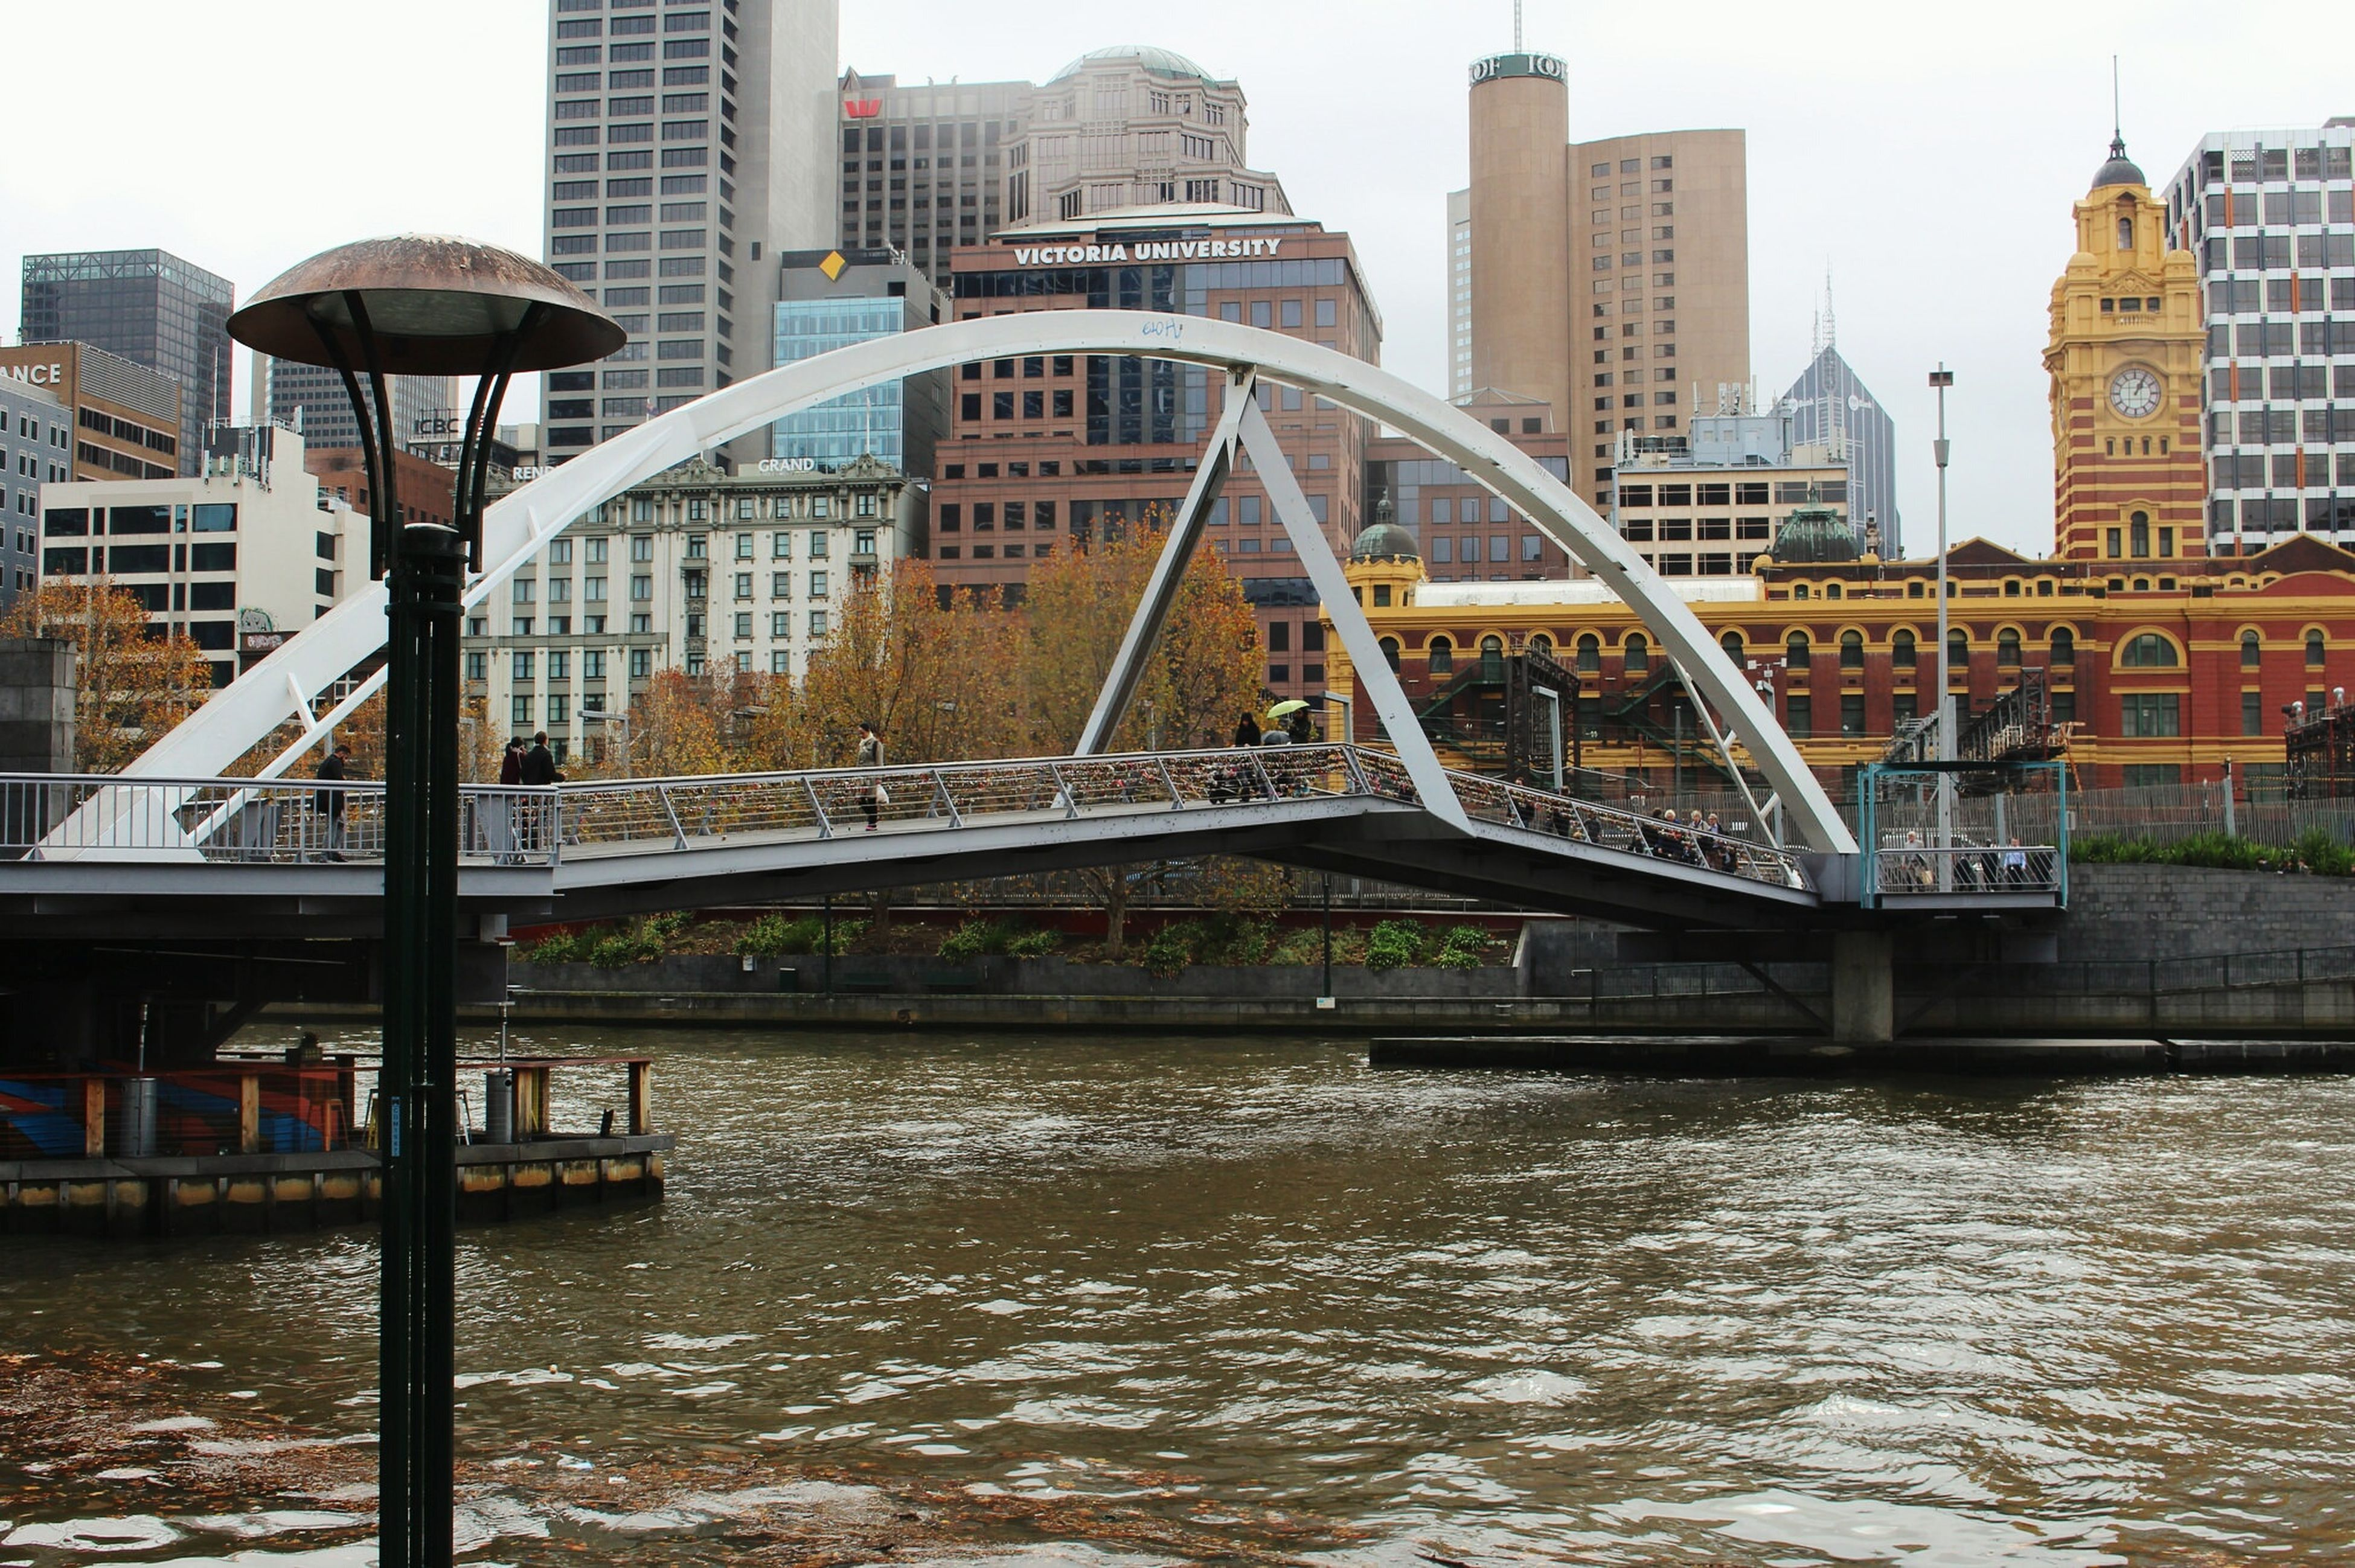 architecture, building exterior, built structure, city, water, waterfront, river, cityscape, skyscraper, capital cities, modern, office building, residential building, city life, travel destinations, building, bridge - man made structure, tower, famous place, connection